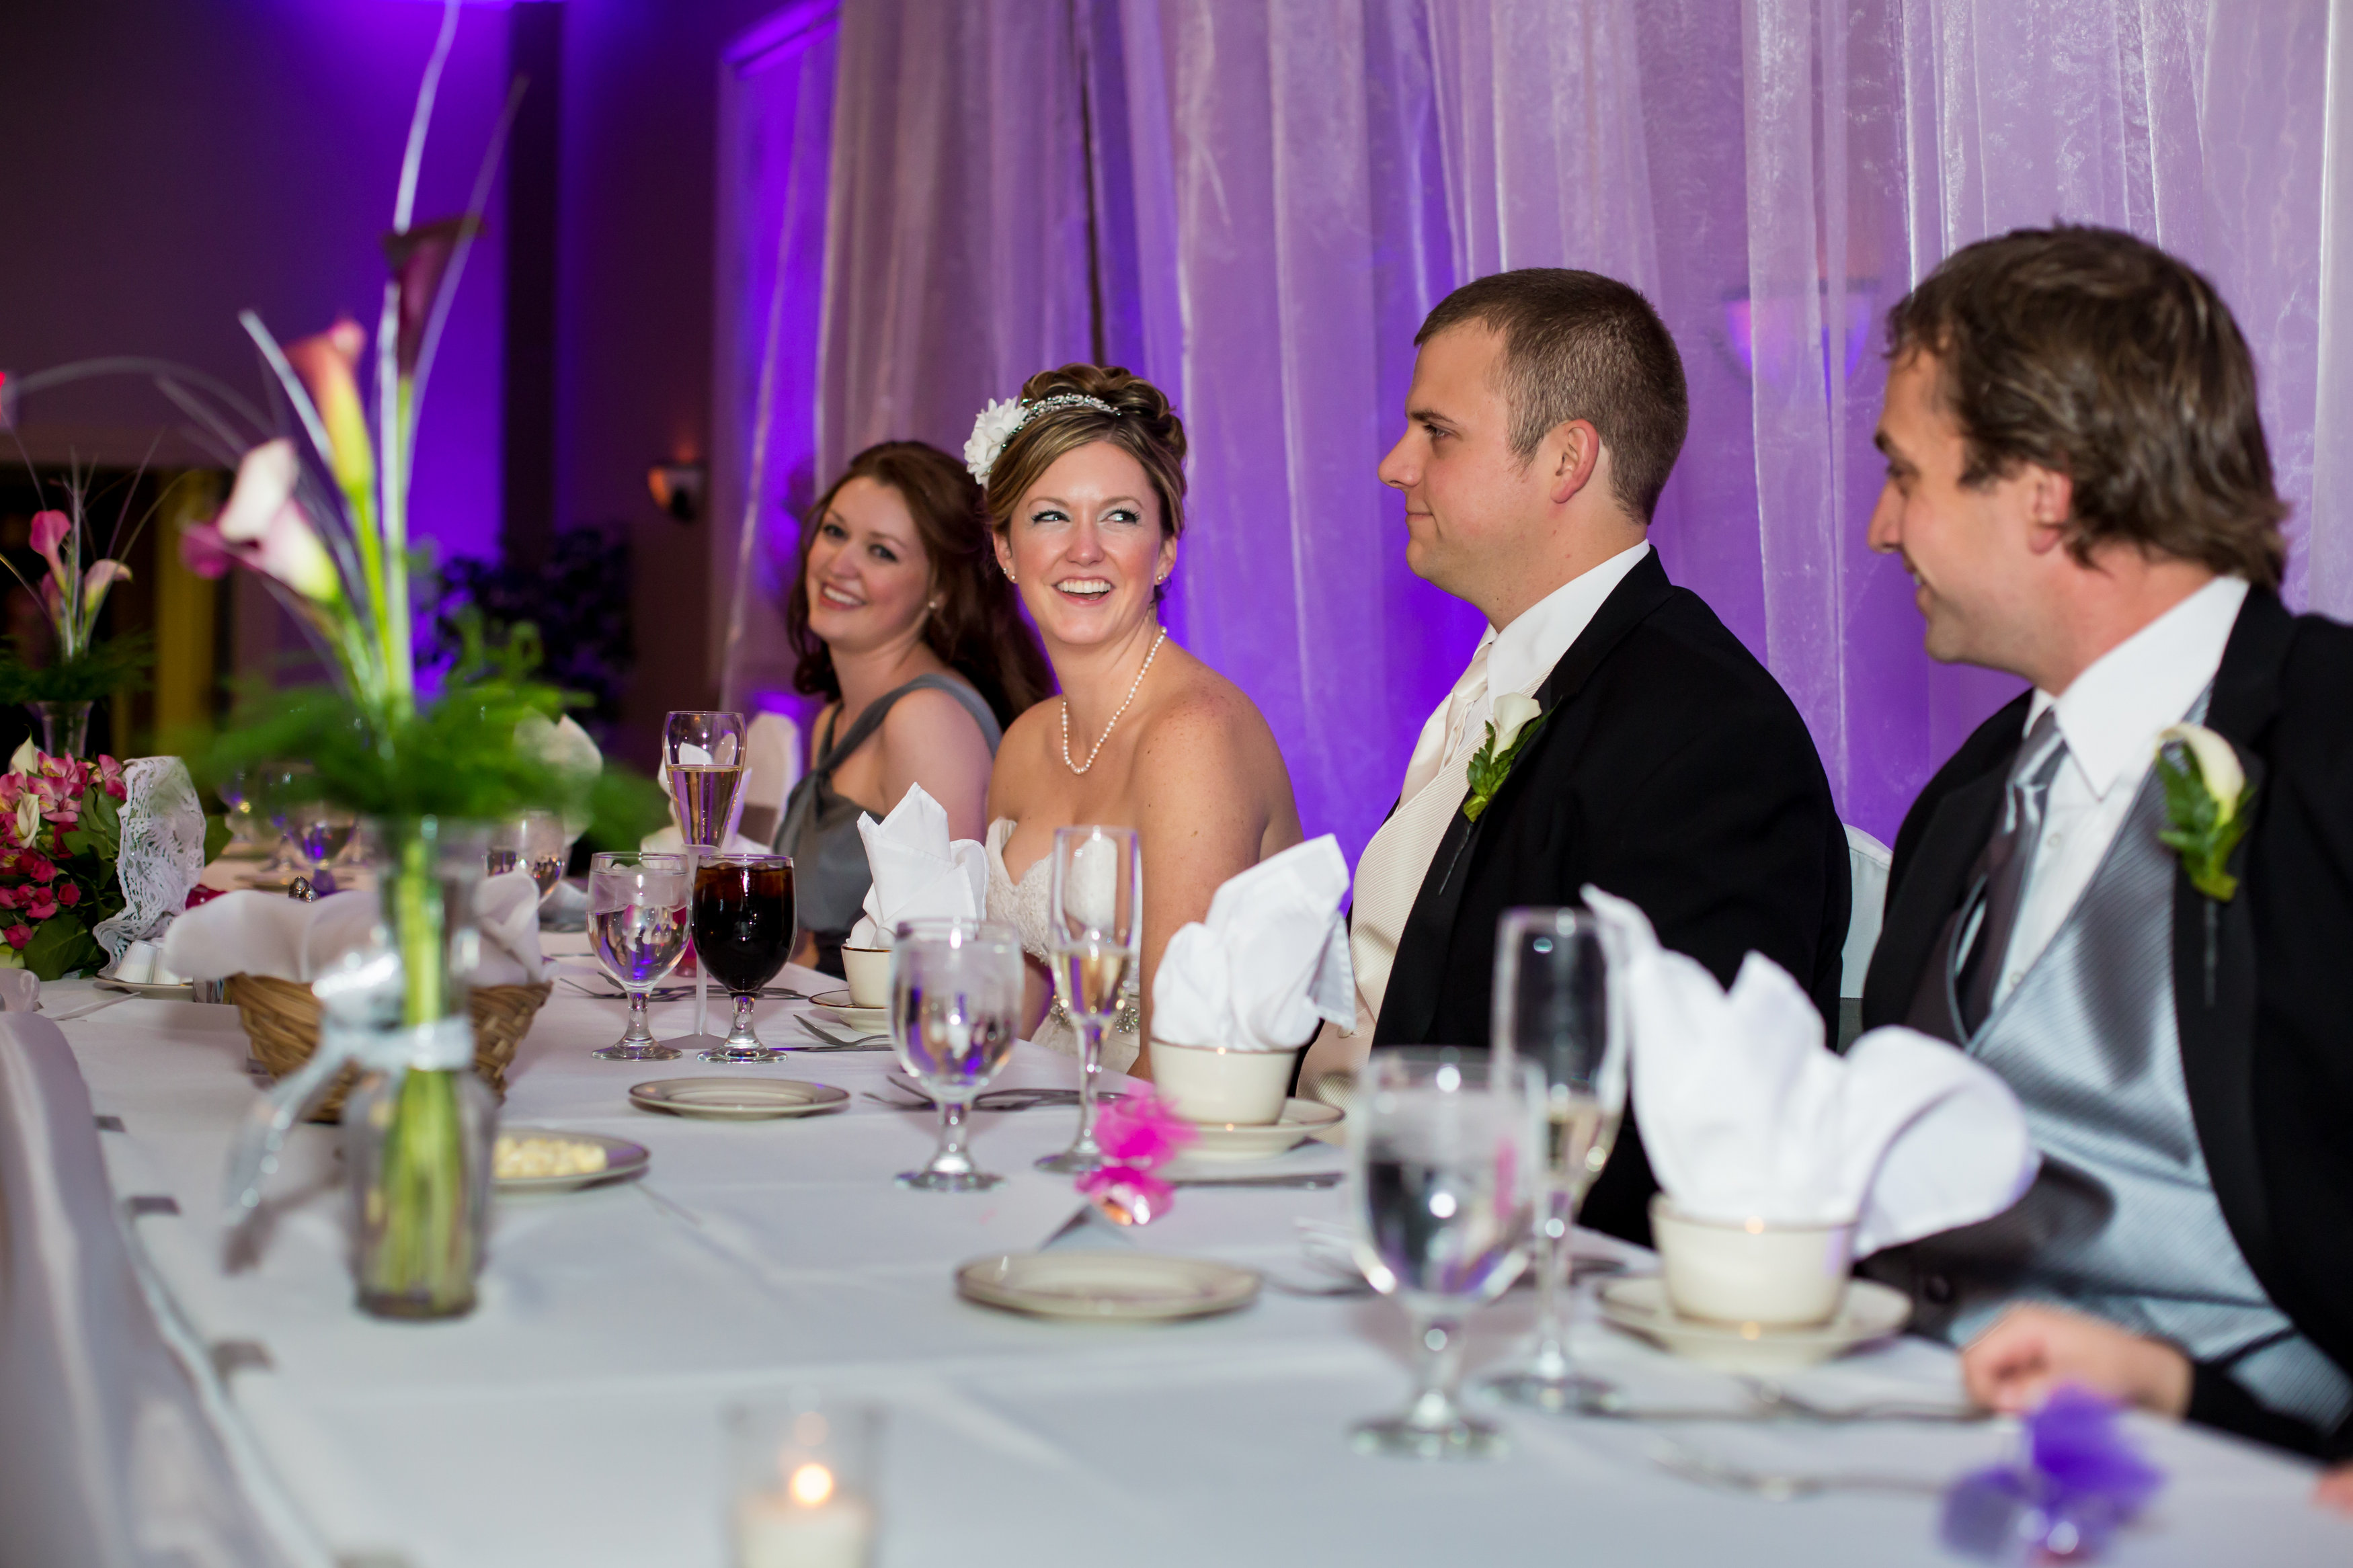 see how the uplighting brings out the colors on the head table beautiful color table uplighting